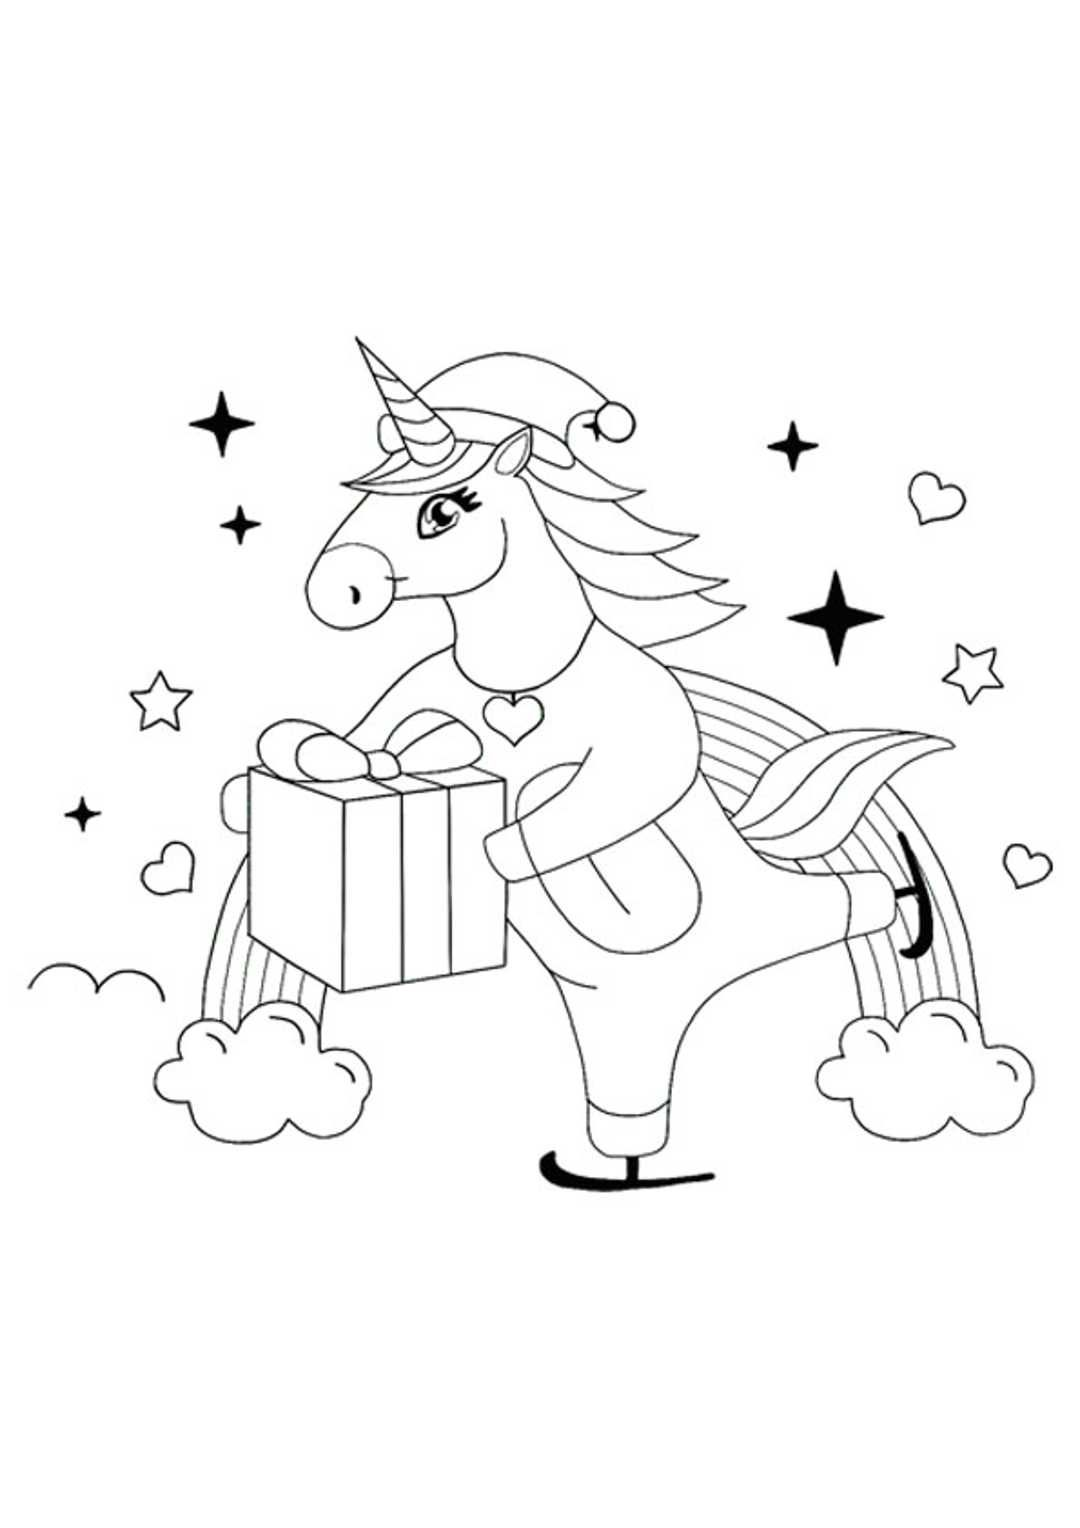 Christmas Unicorn Coloring Pages Unicorn Coloring Pages Free Printable Coloring Sheets Mermaid Coloring Pages